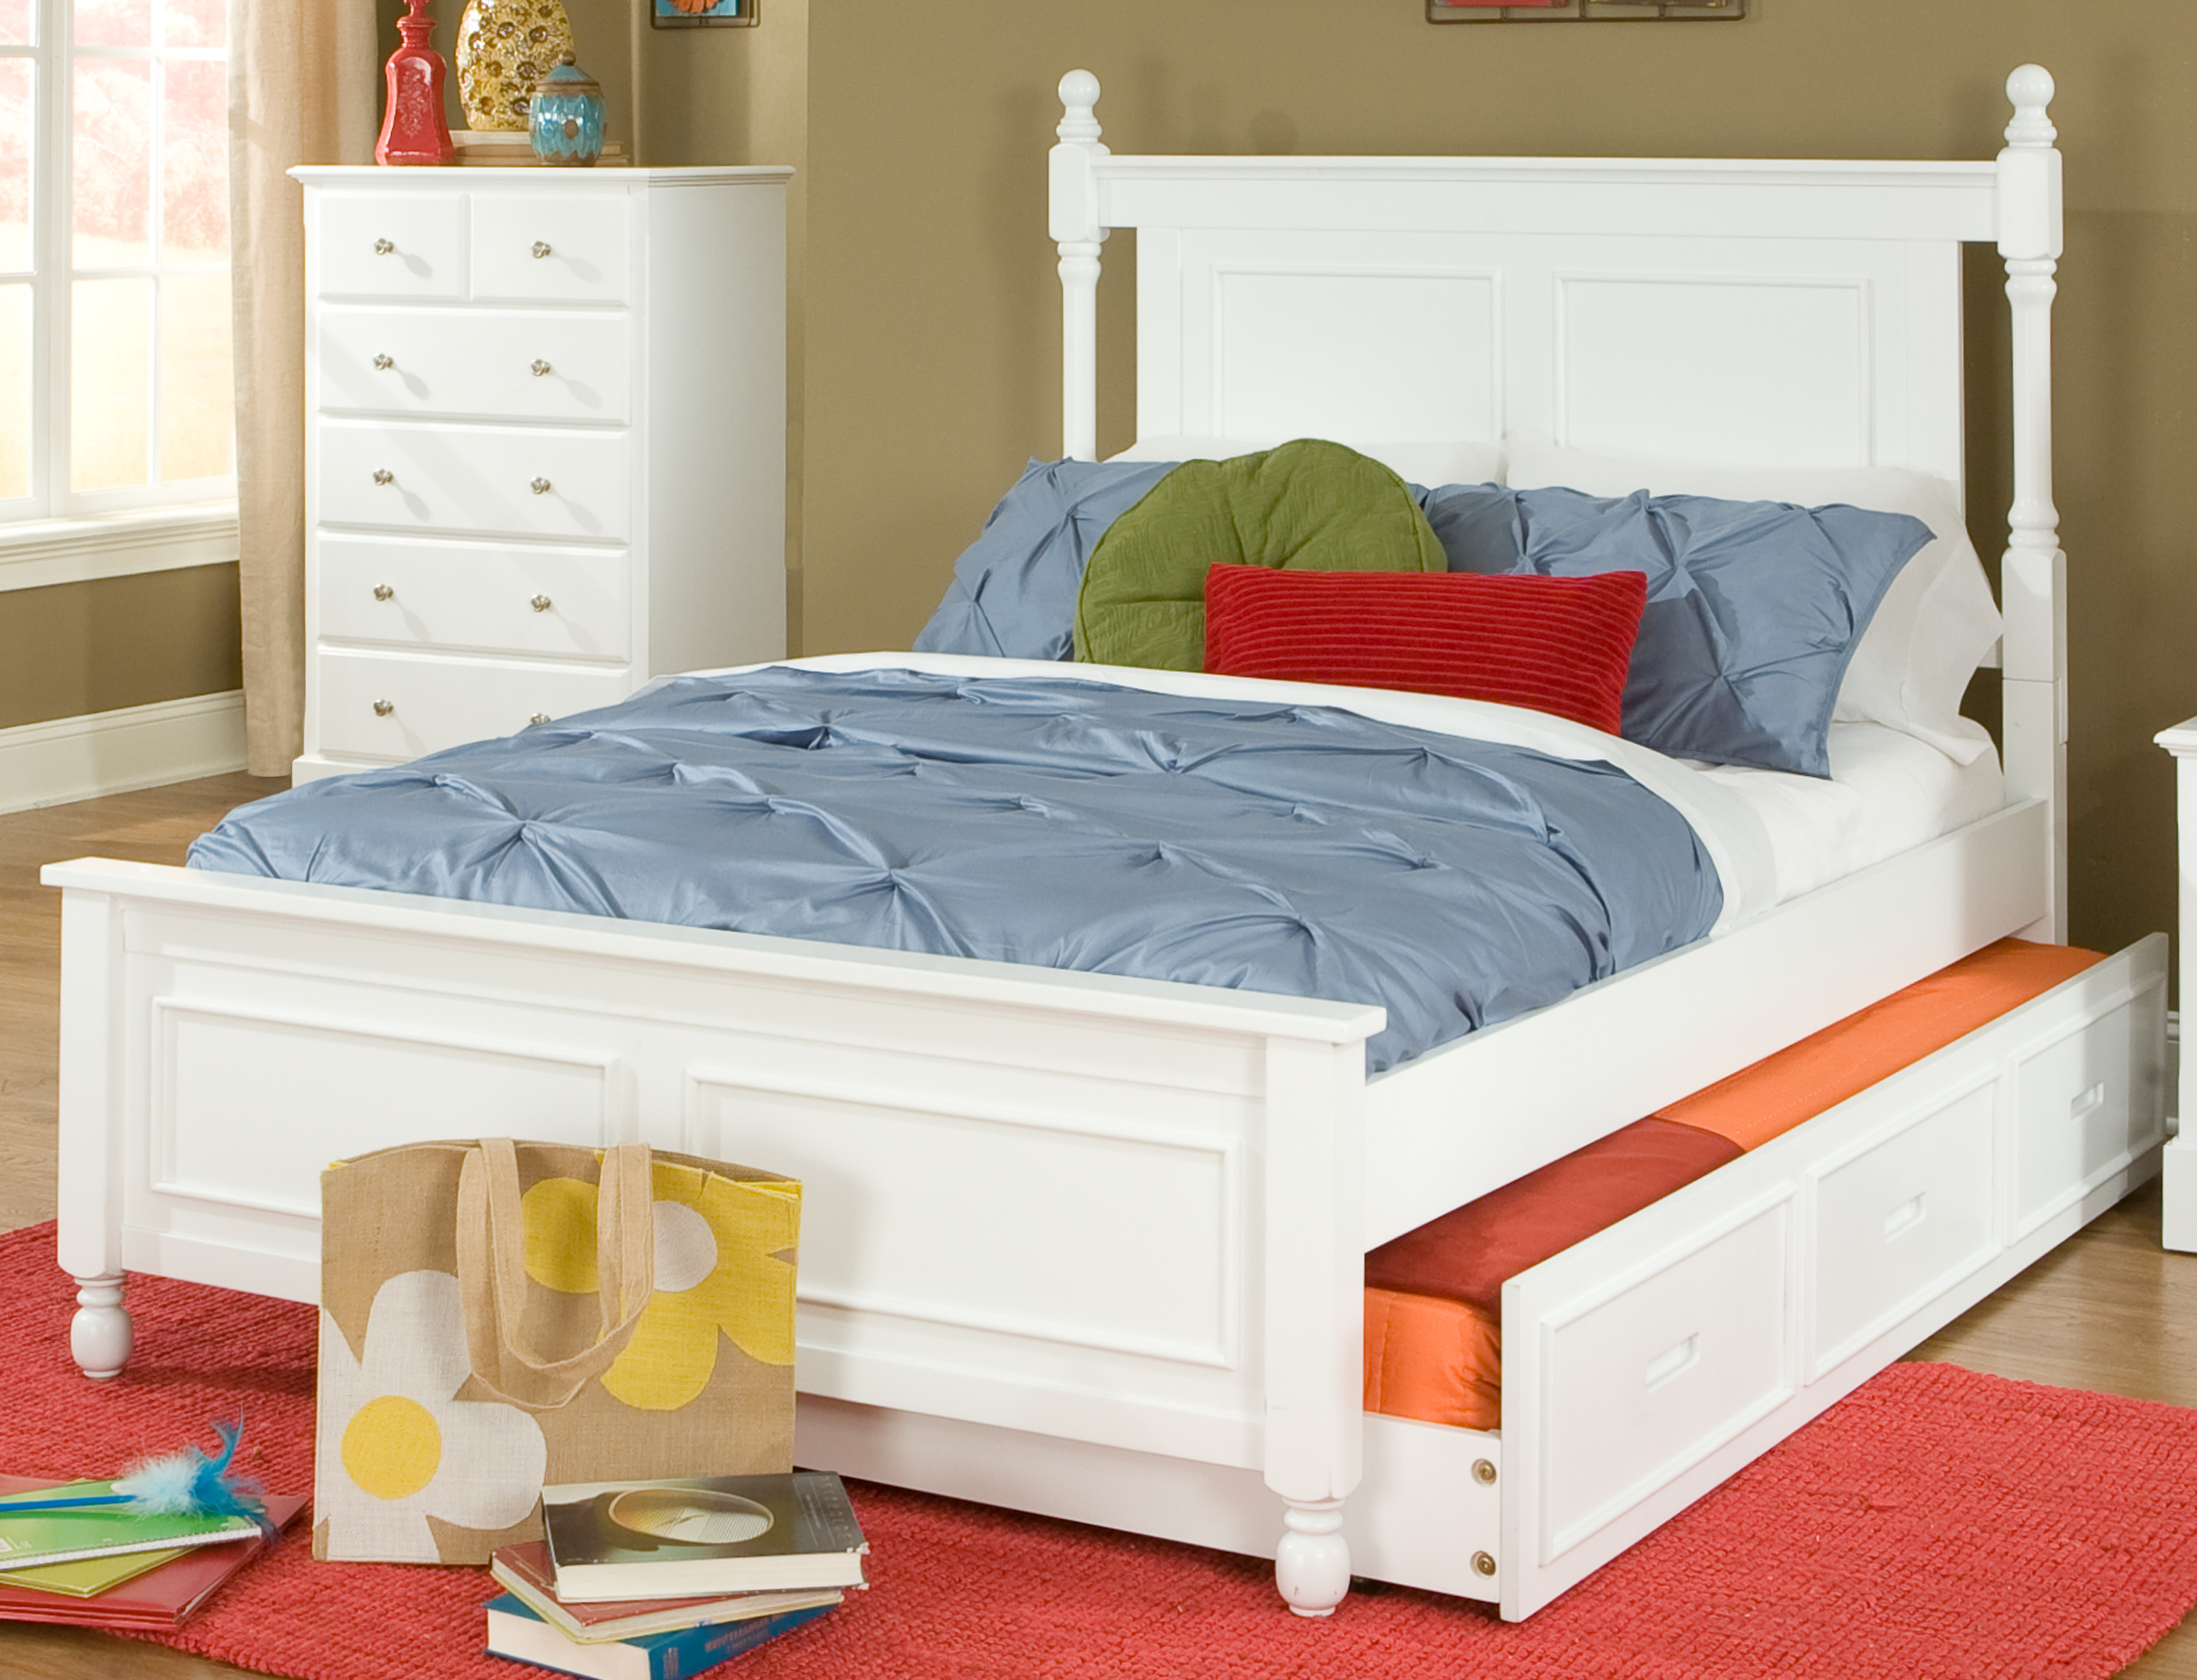 to pinterest try storage creek bedroom white bed frame shoal drawers beds projects with trundle walmart platform twin shelves and soft underneath sauder